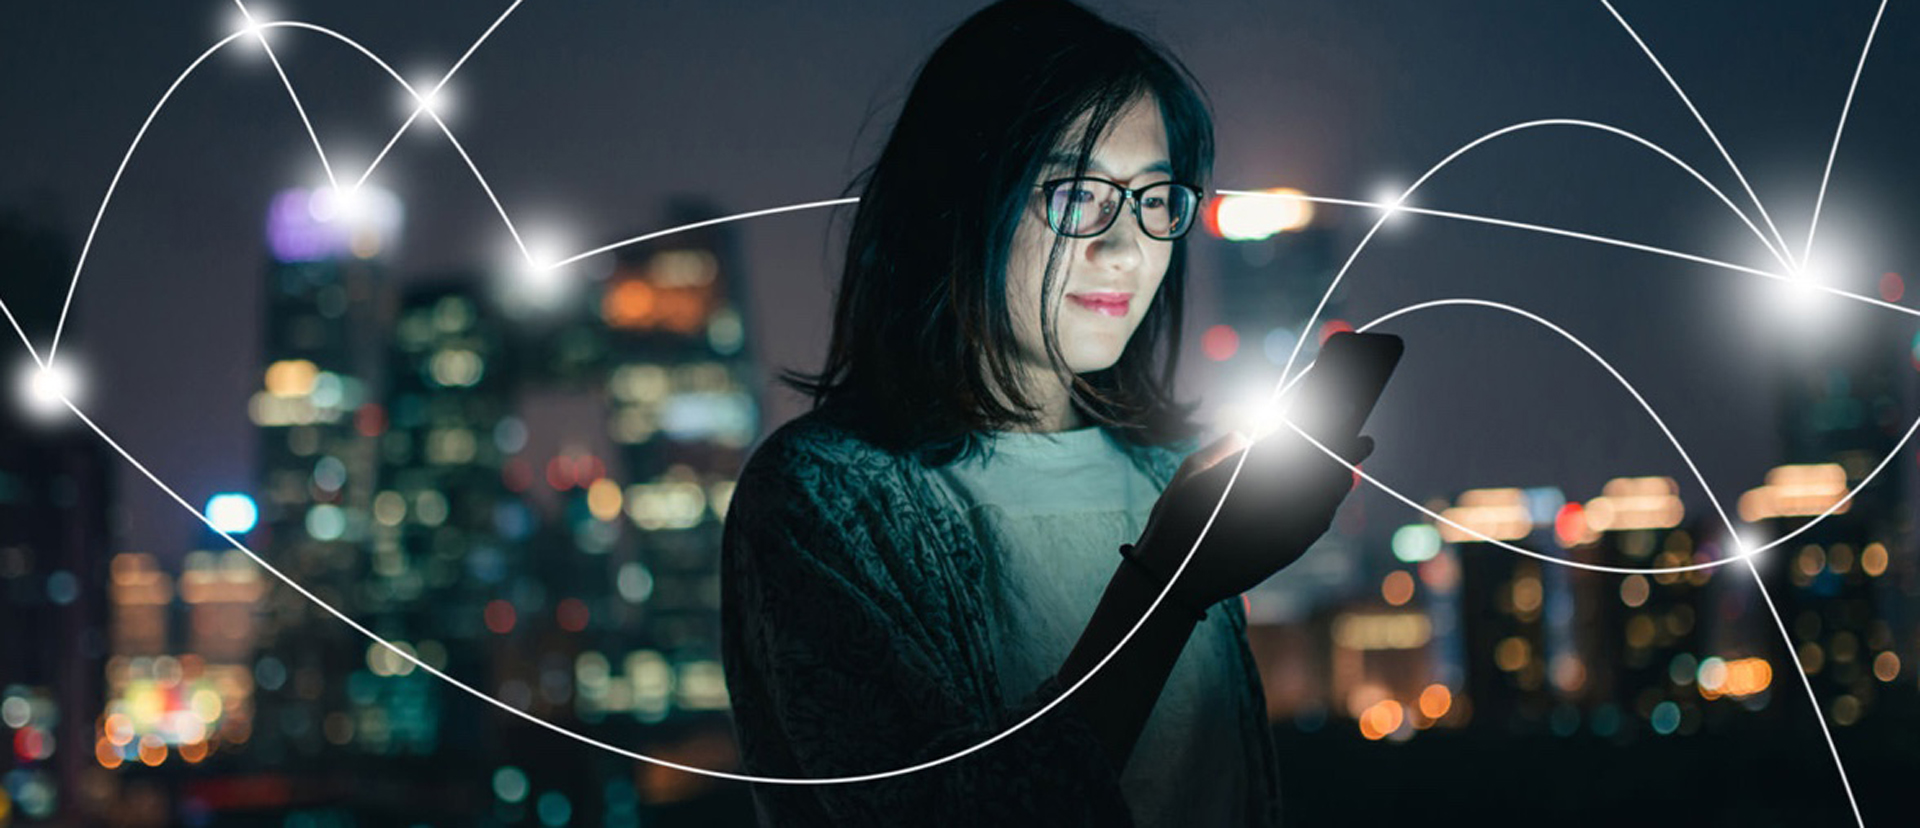 Woman holds phone surrounded by streaks of light